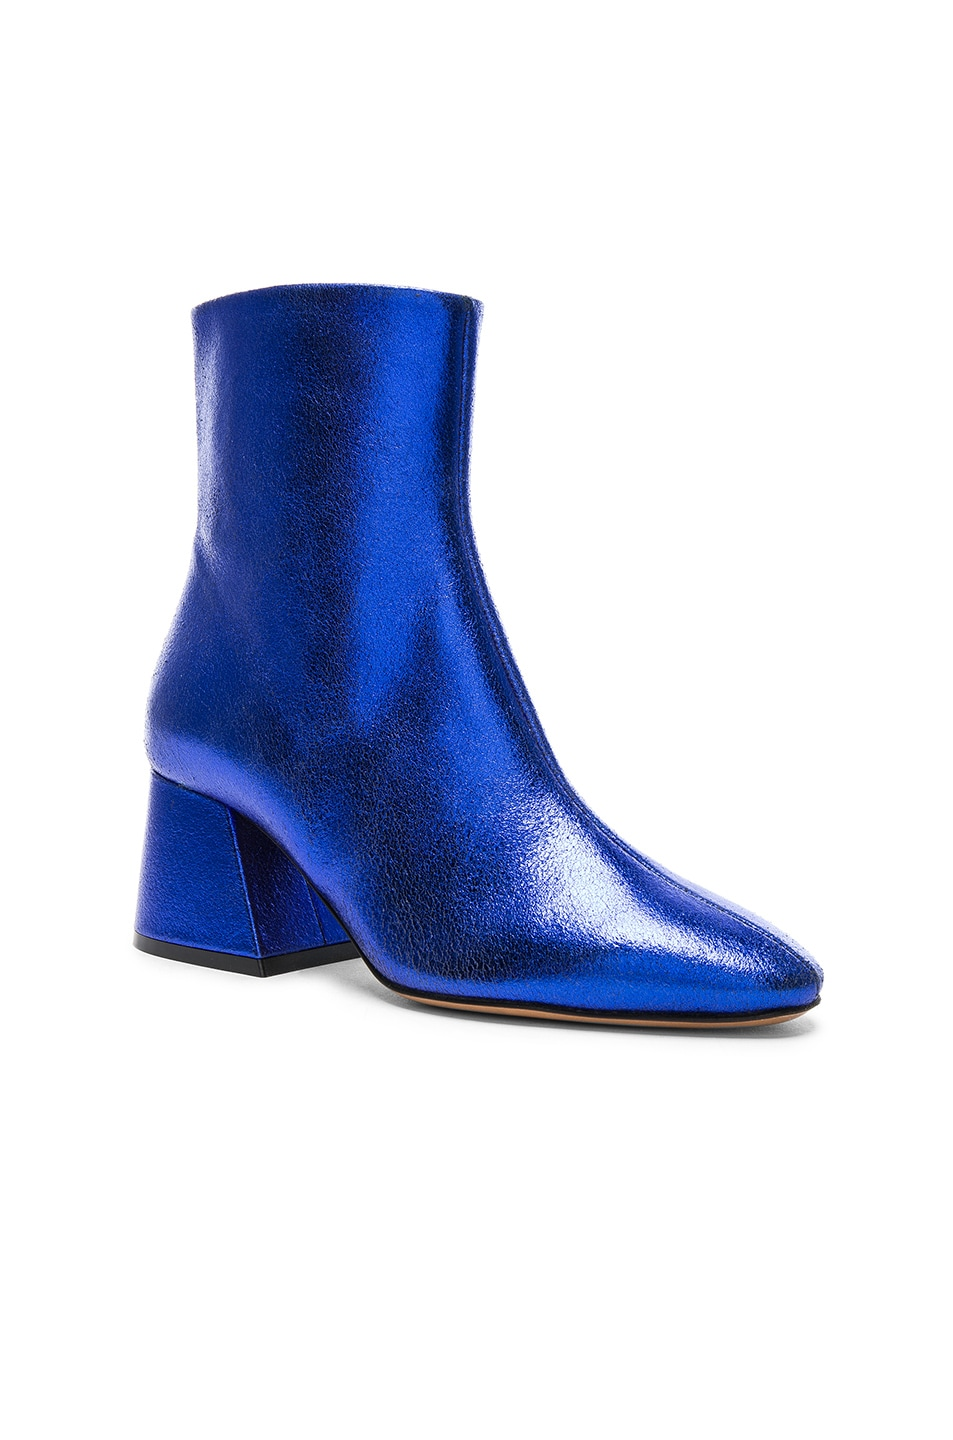 Image 2 of Maison Margiela Laminated Leather Chunky Heel Boots in Cobalt